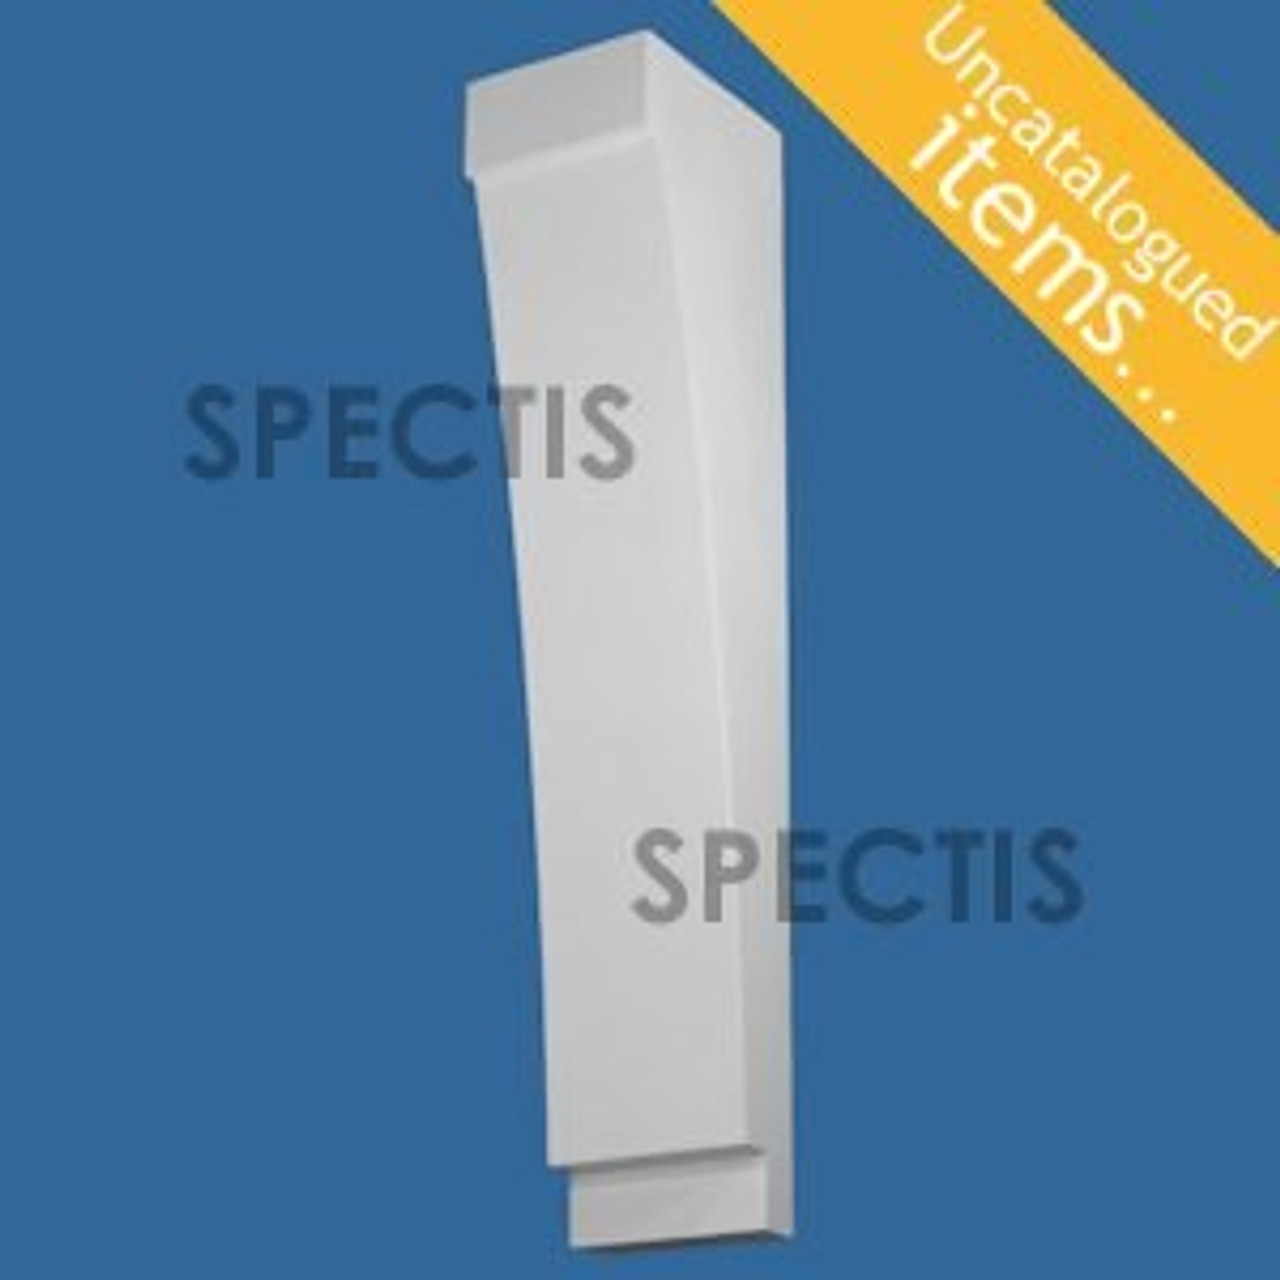 "BL3006 Spectis Eave Block or Bracket 6""W x 32""H x 7.25"" Projection"